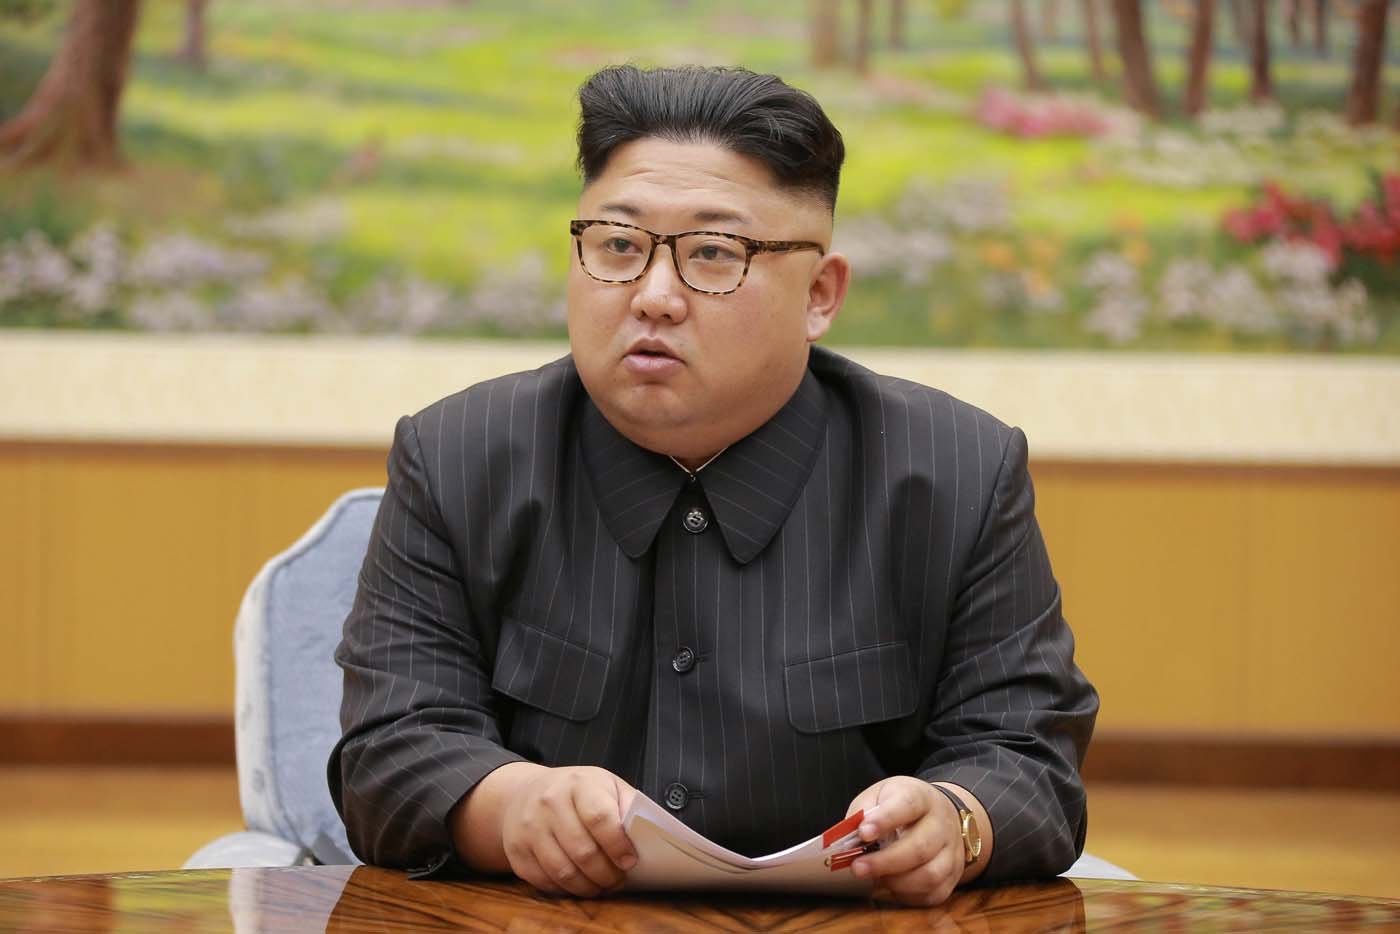 North Korean leader Kim Jong Un participates in a meeting with the Presidium of the Political Bureau of the Central Committee of the WorkersÕ Party of Korea in this undated photo released by North Korea